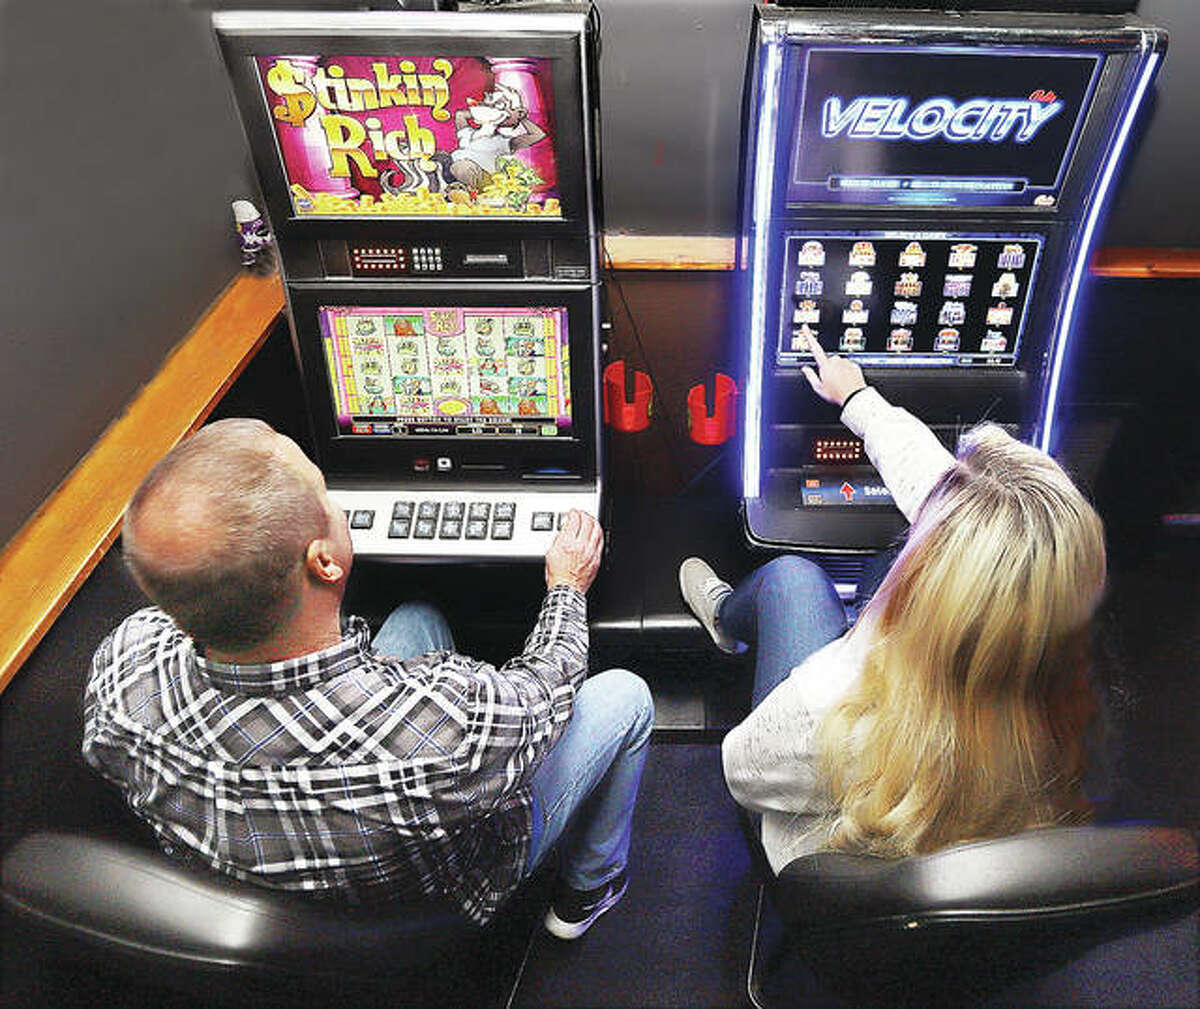 Video gaming may be coming to Maryville